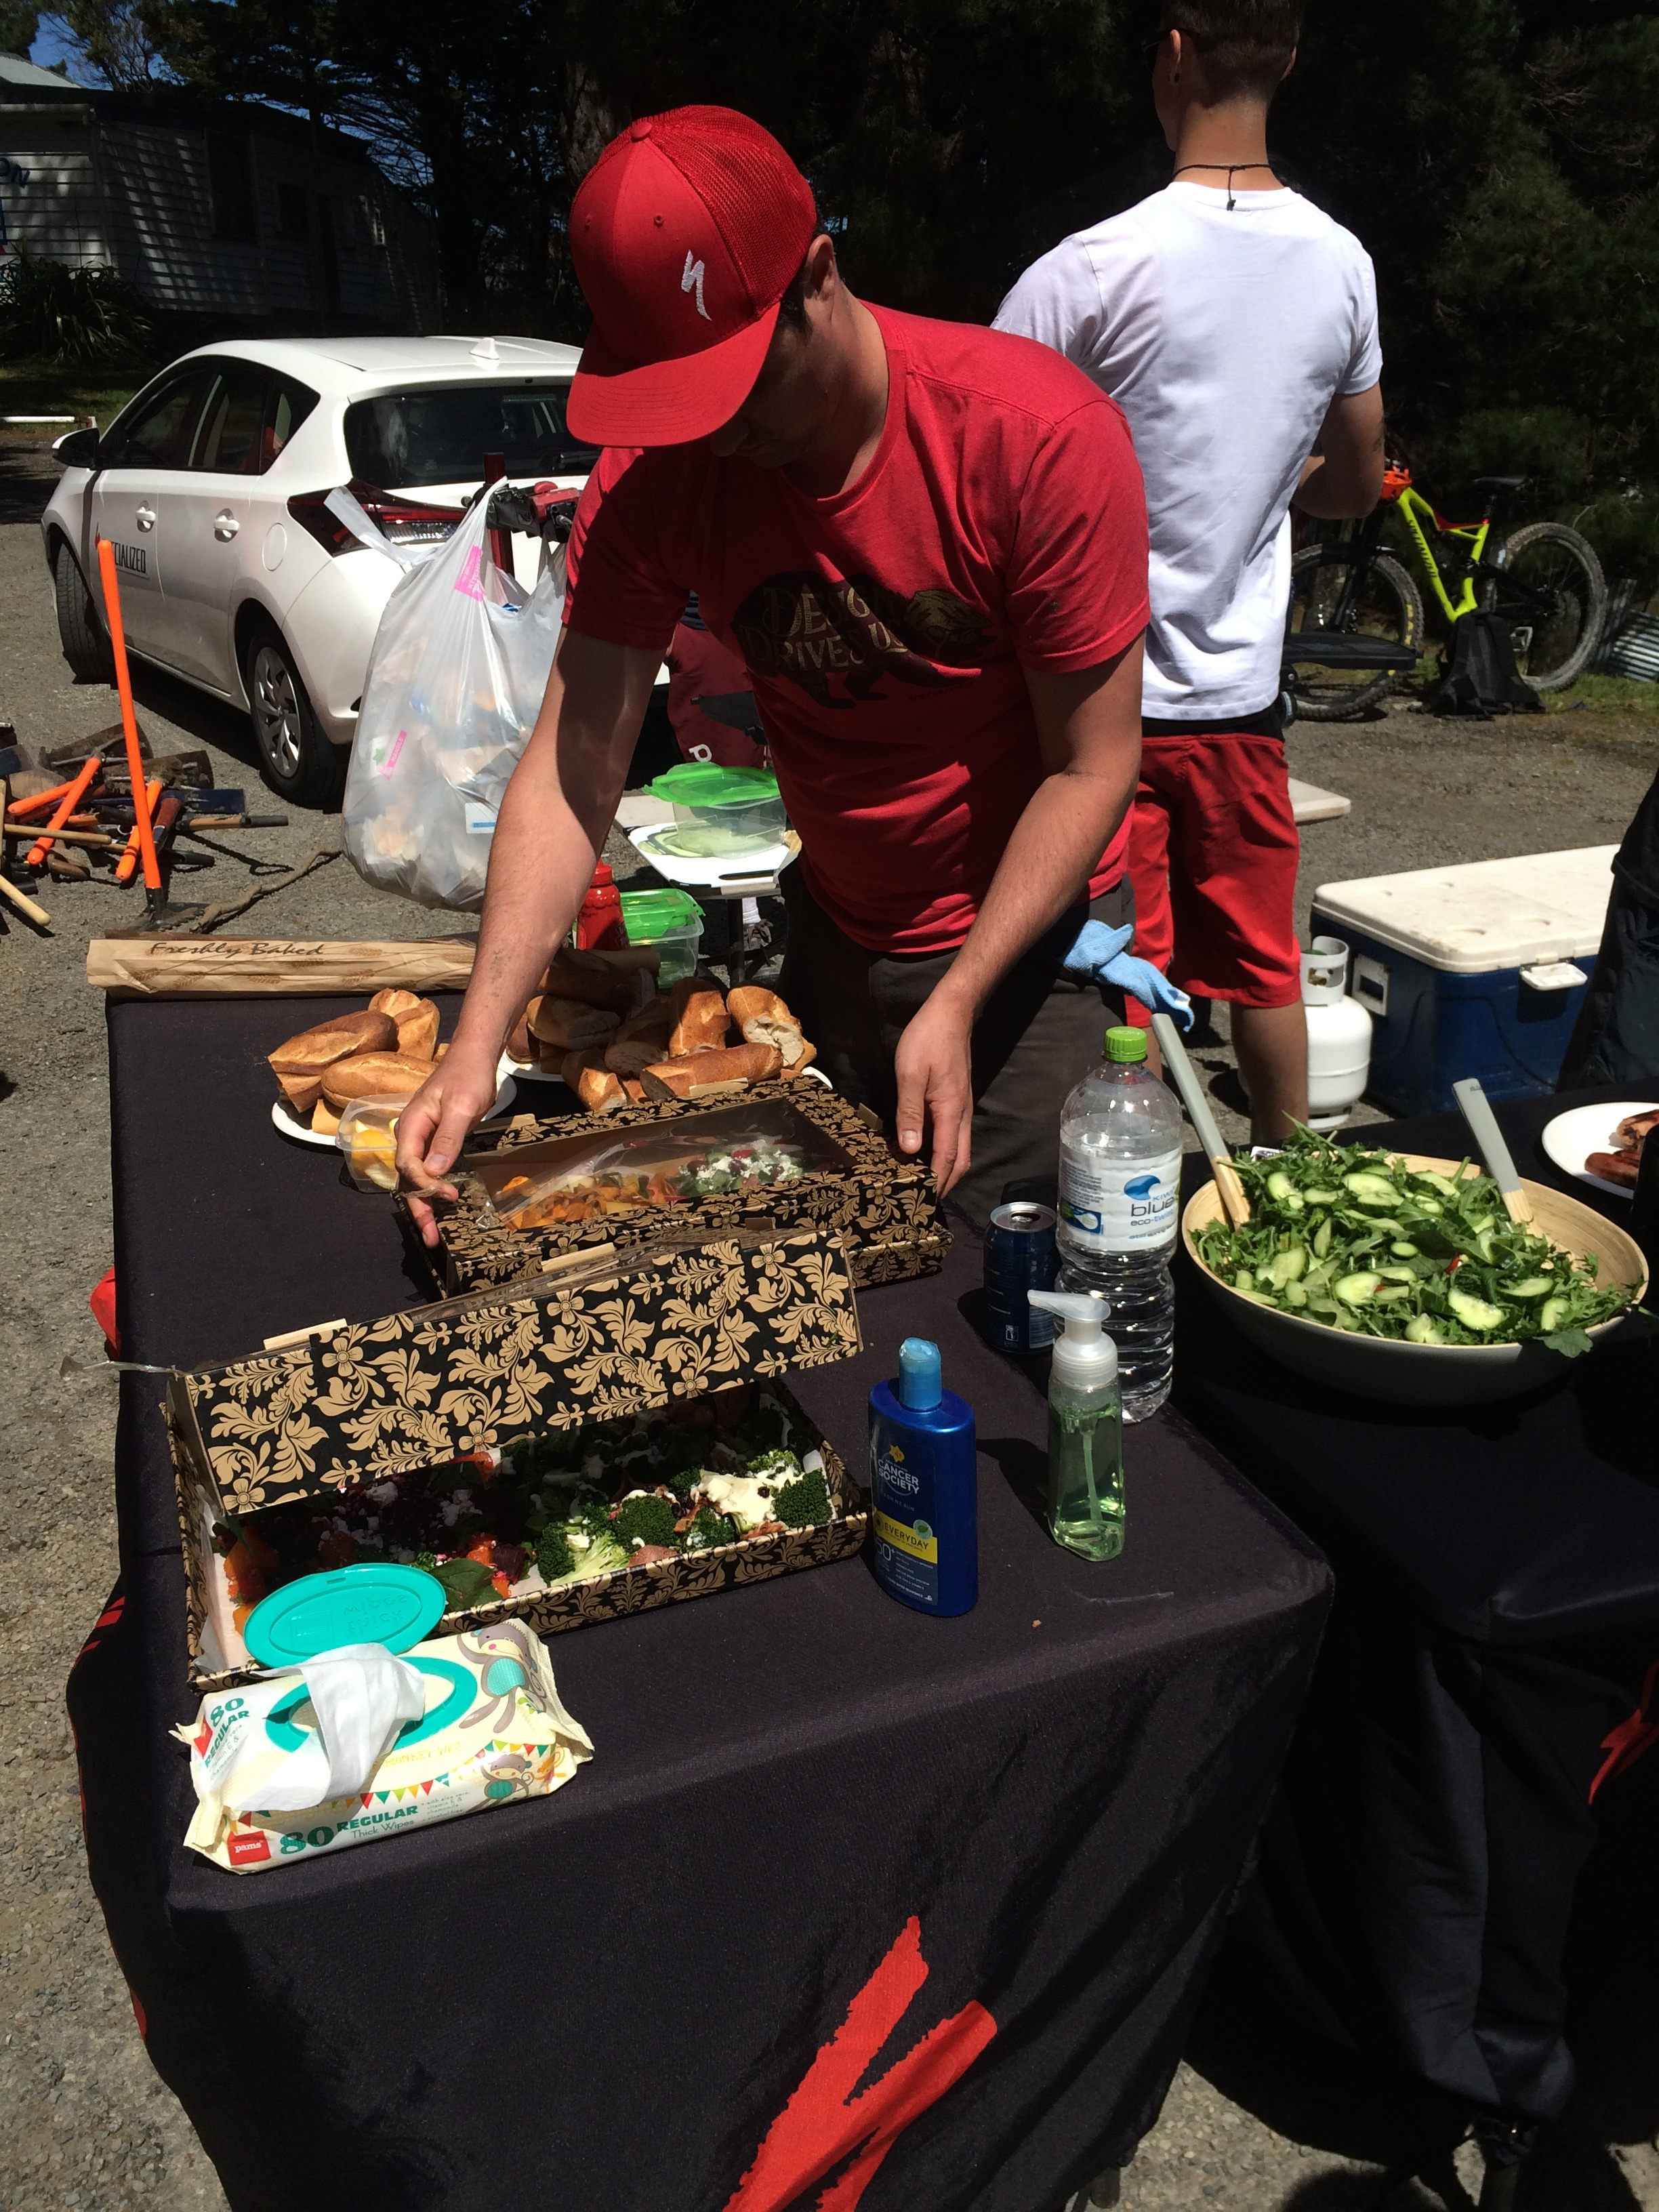 James whips up a couple of salads before the crews return.